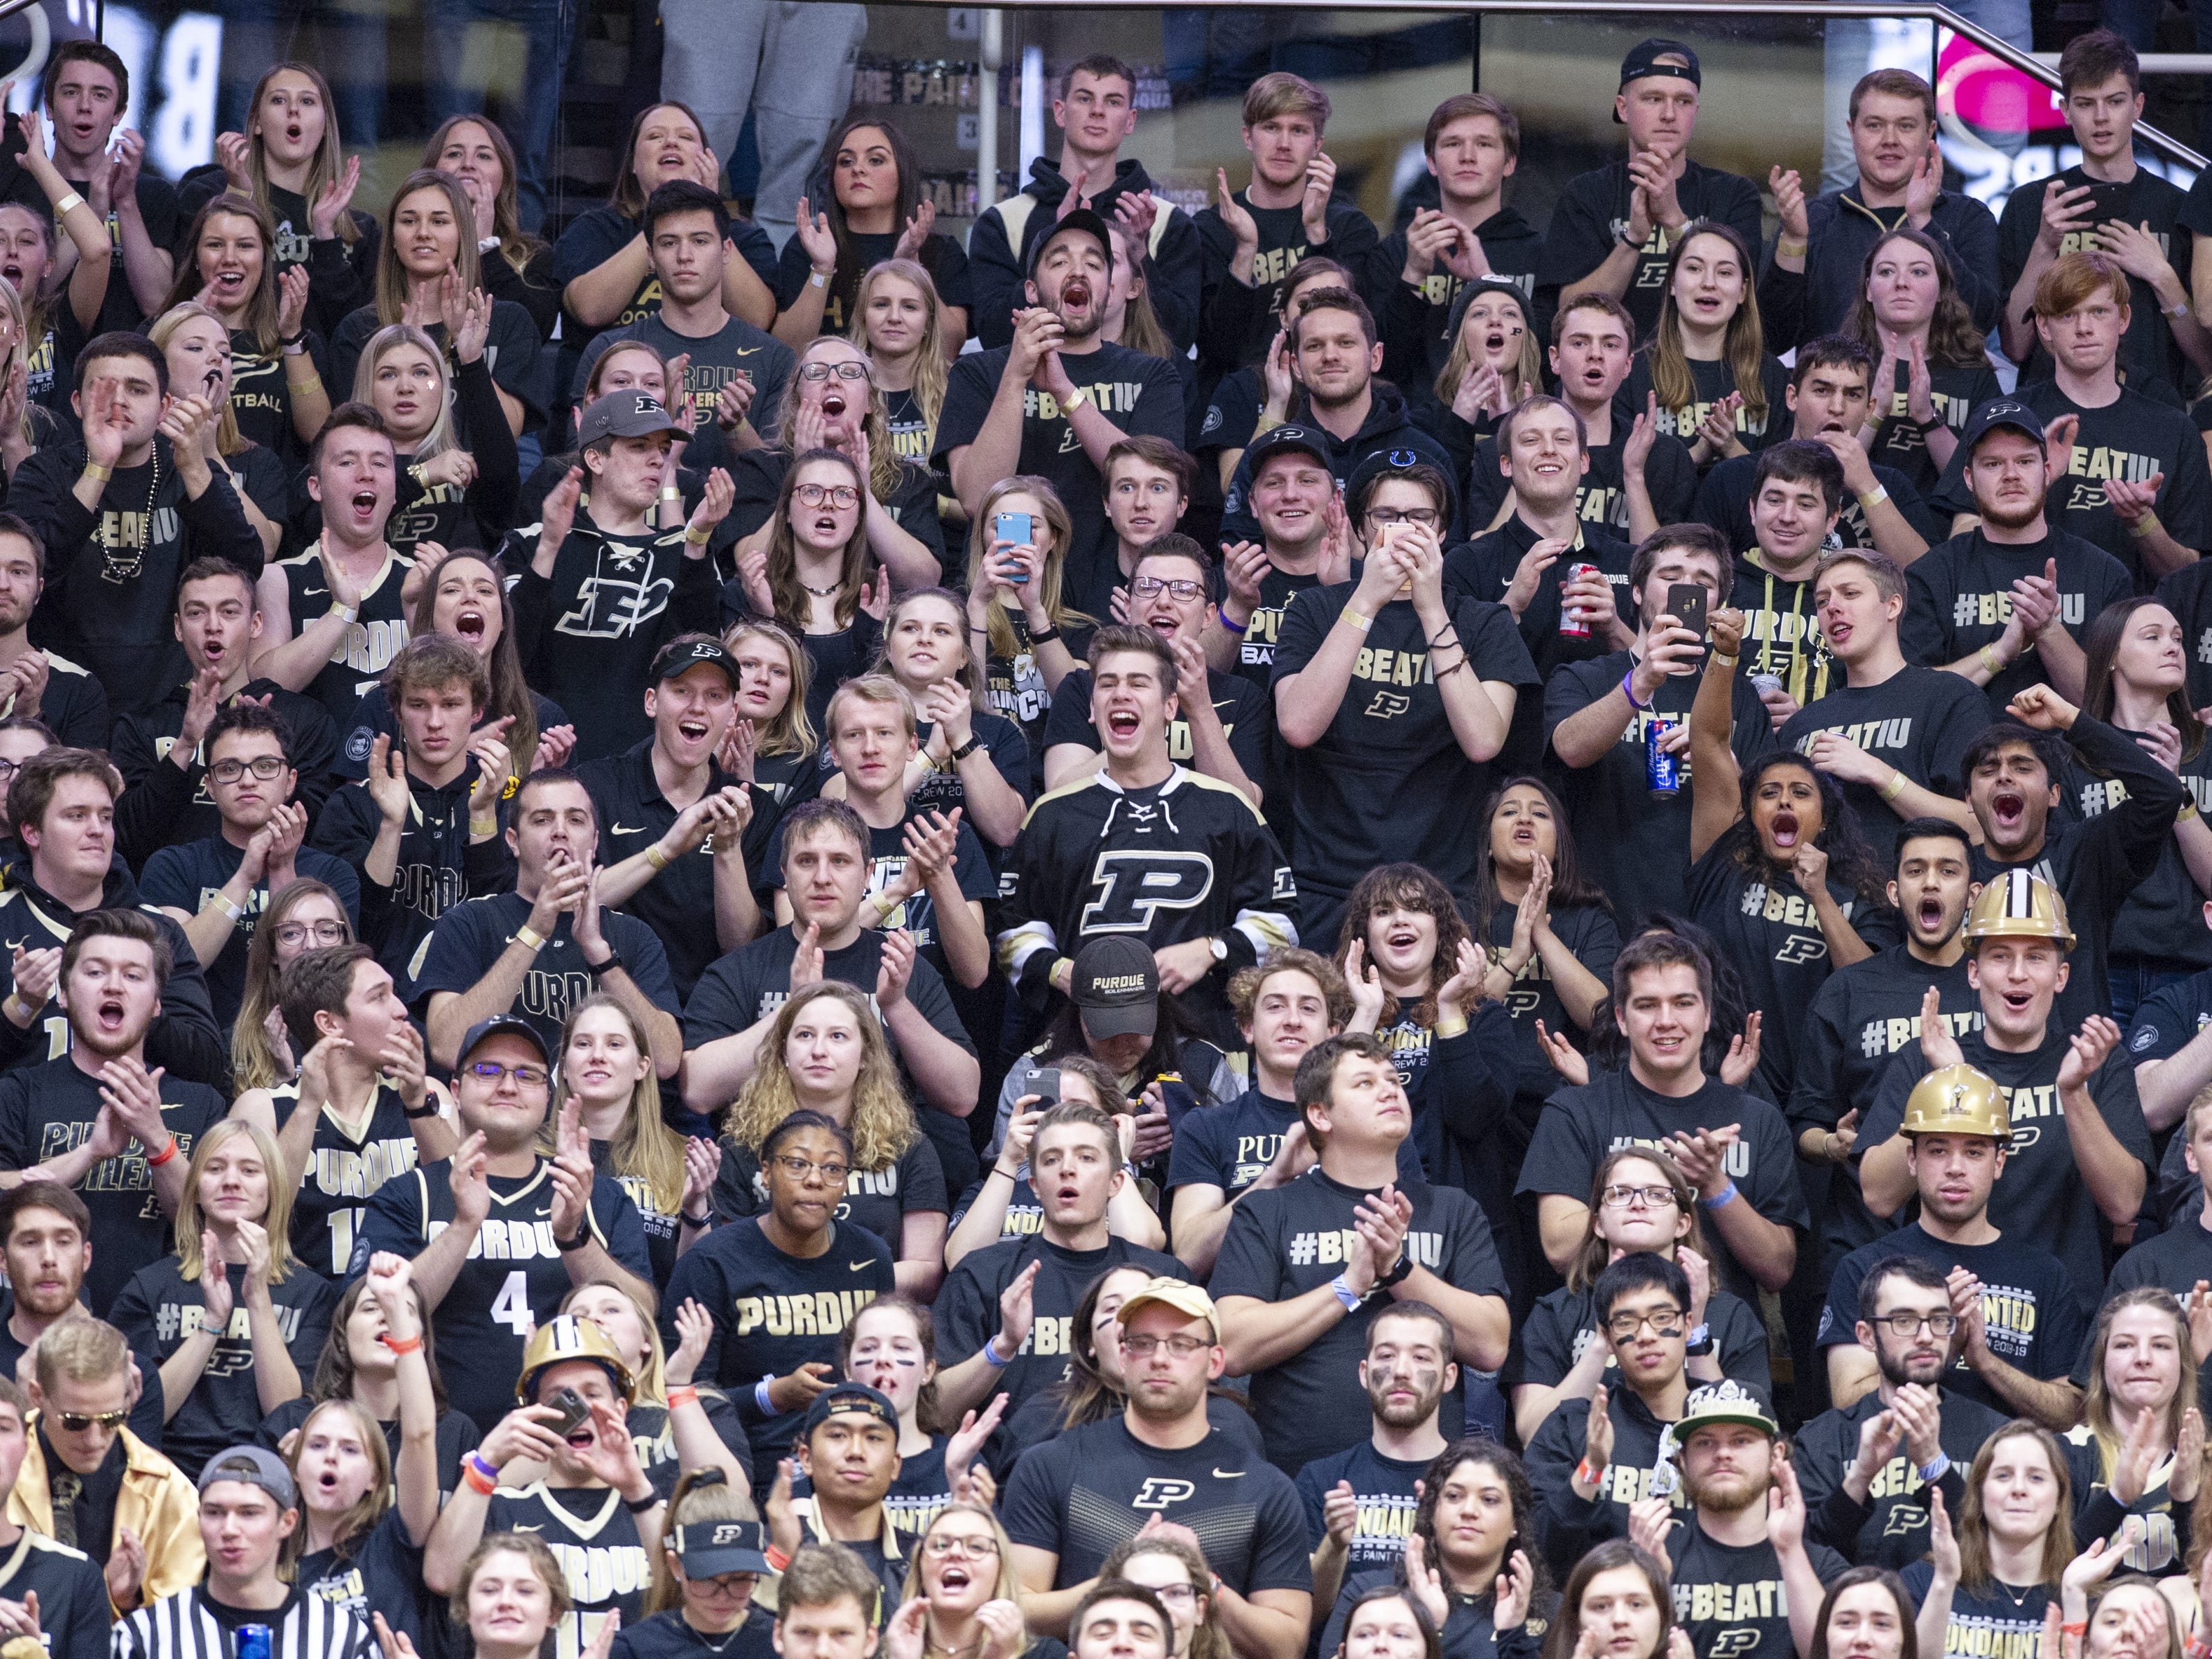 Purdue fans cheer before the first half of action. Purdue hosted Indiana in a BigTen men's basketball matchup, Saturday, Jan. 19, 2019.